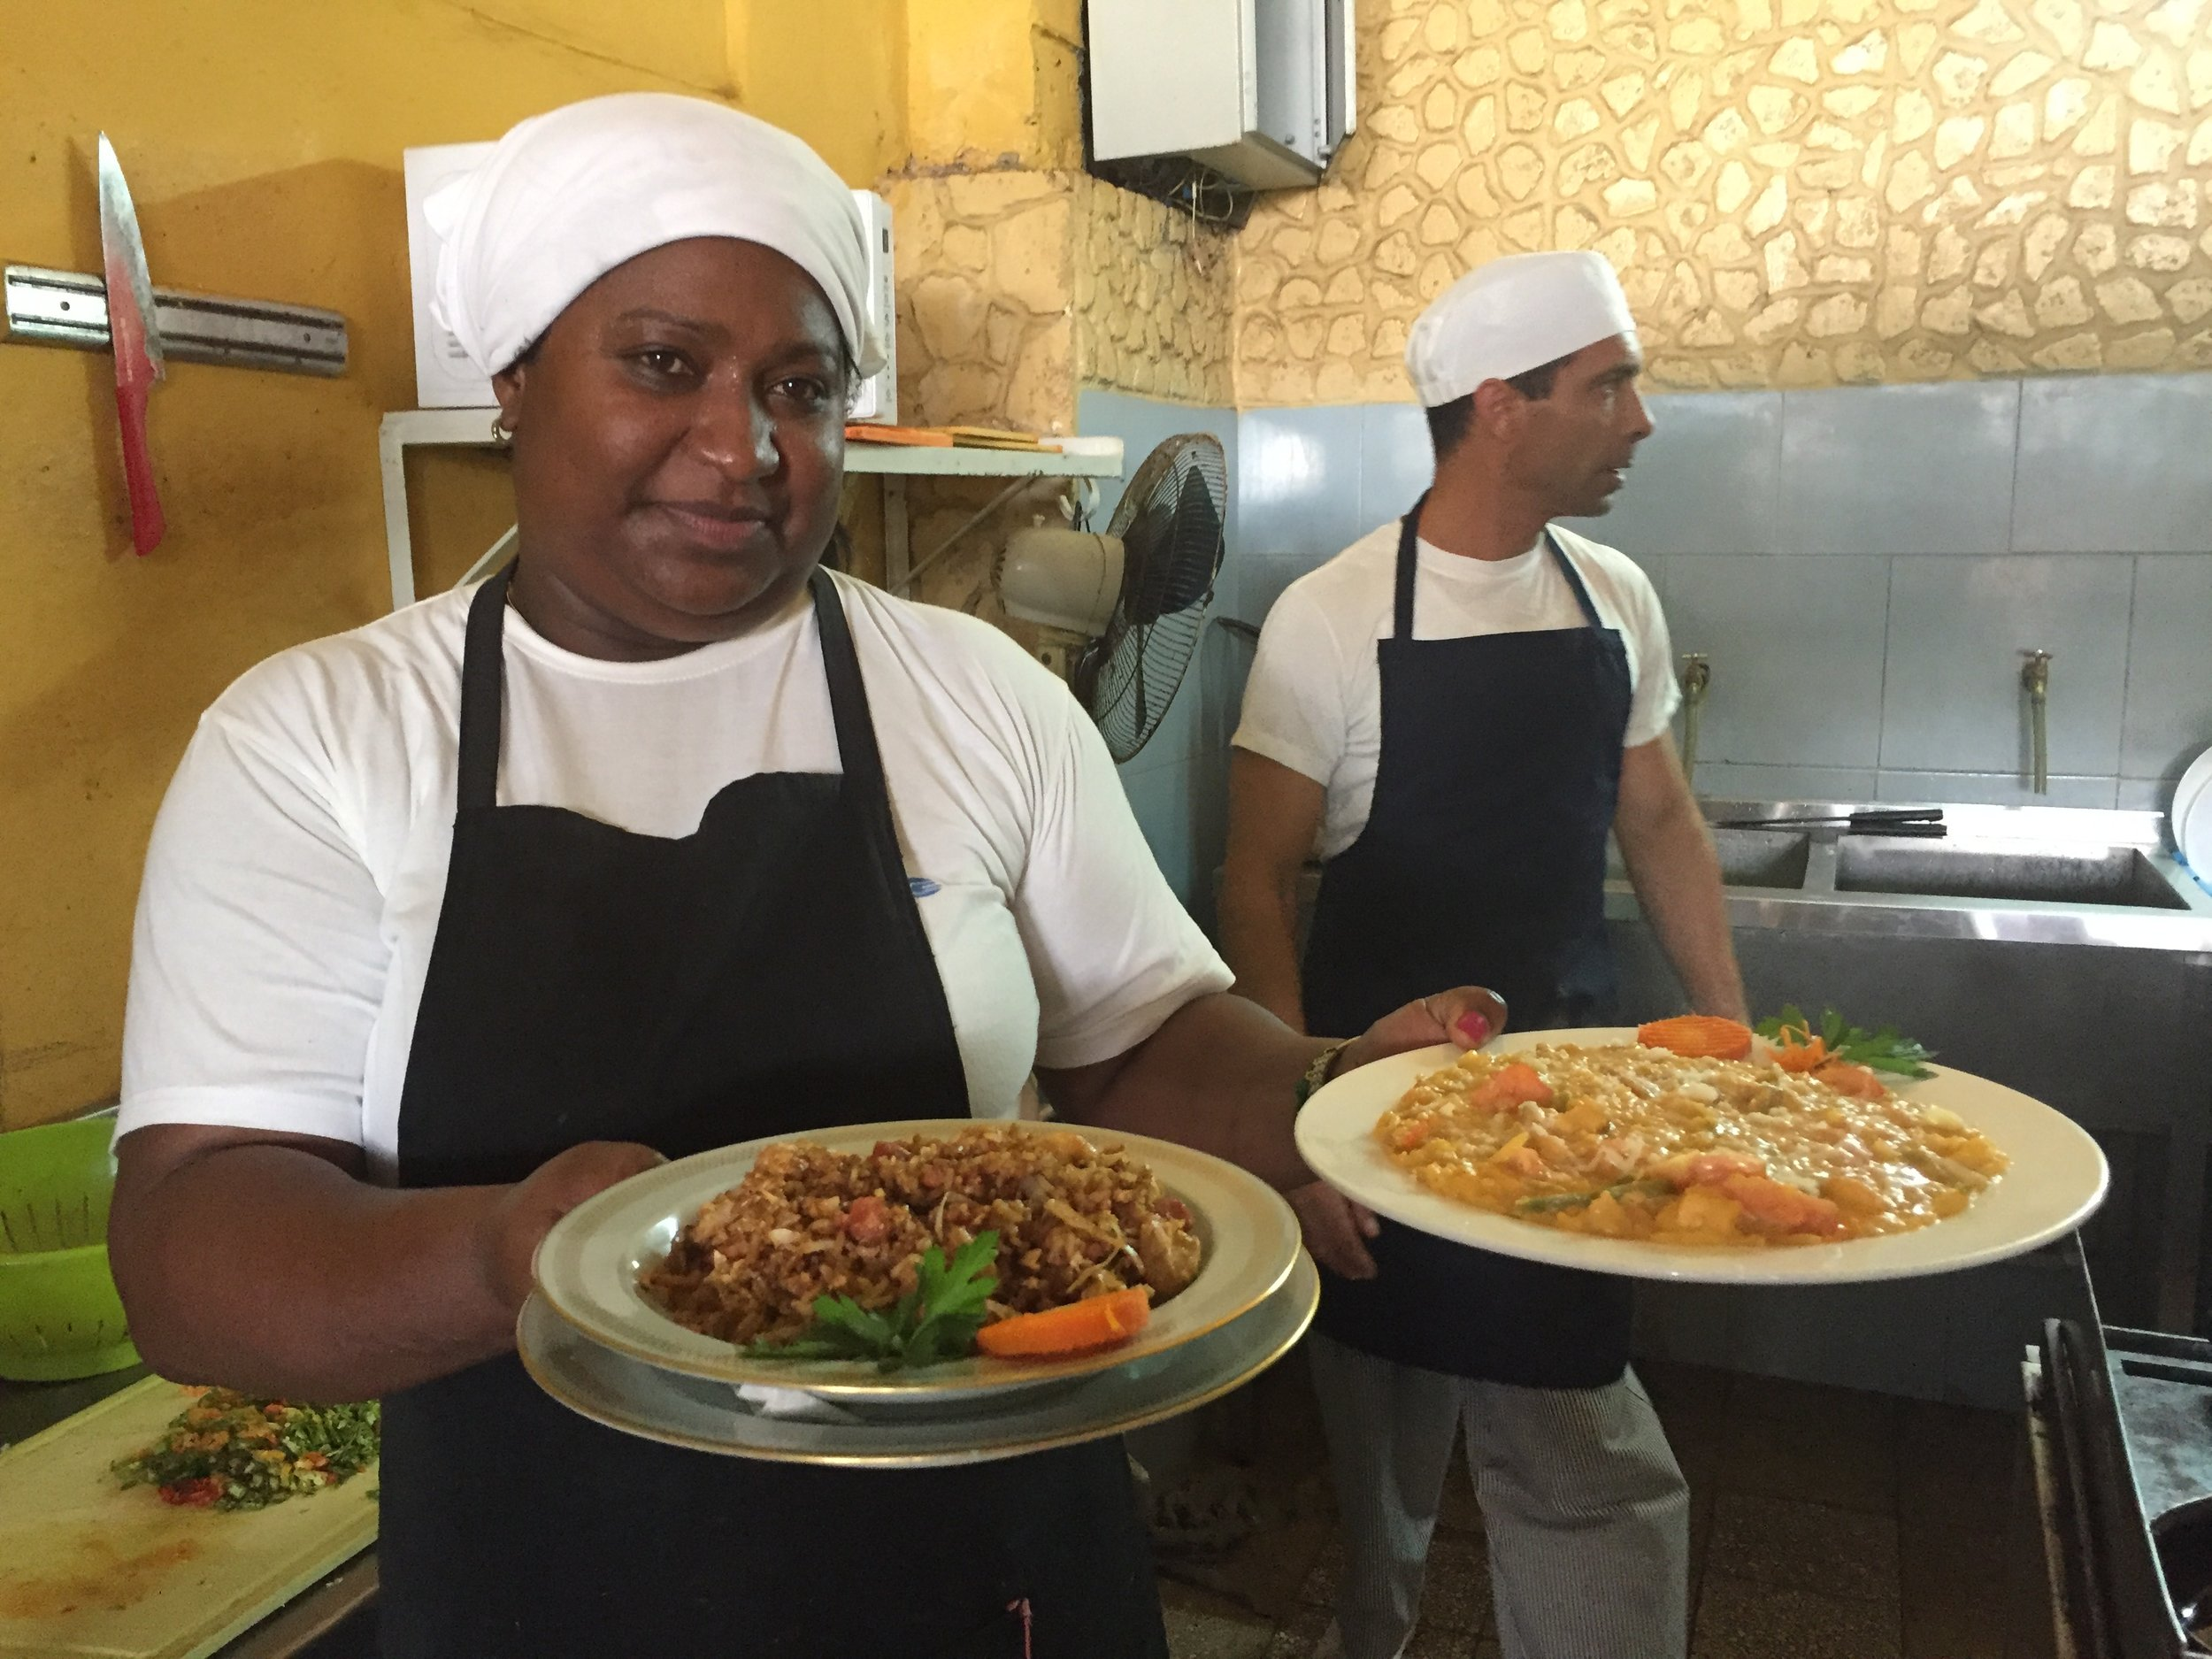 Dunia & Fernando in the kitchen at El Cimarron, serving up fried rice and seafood risotto cuban style.